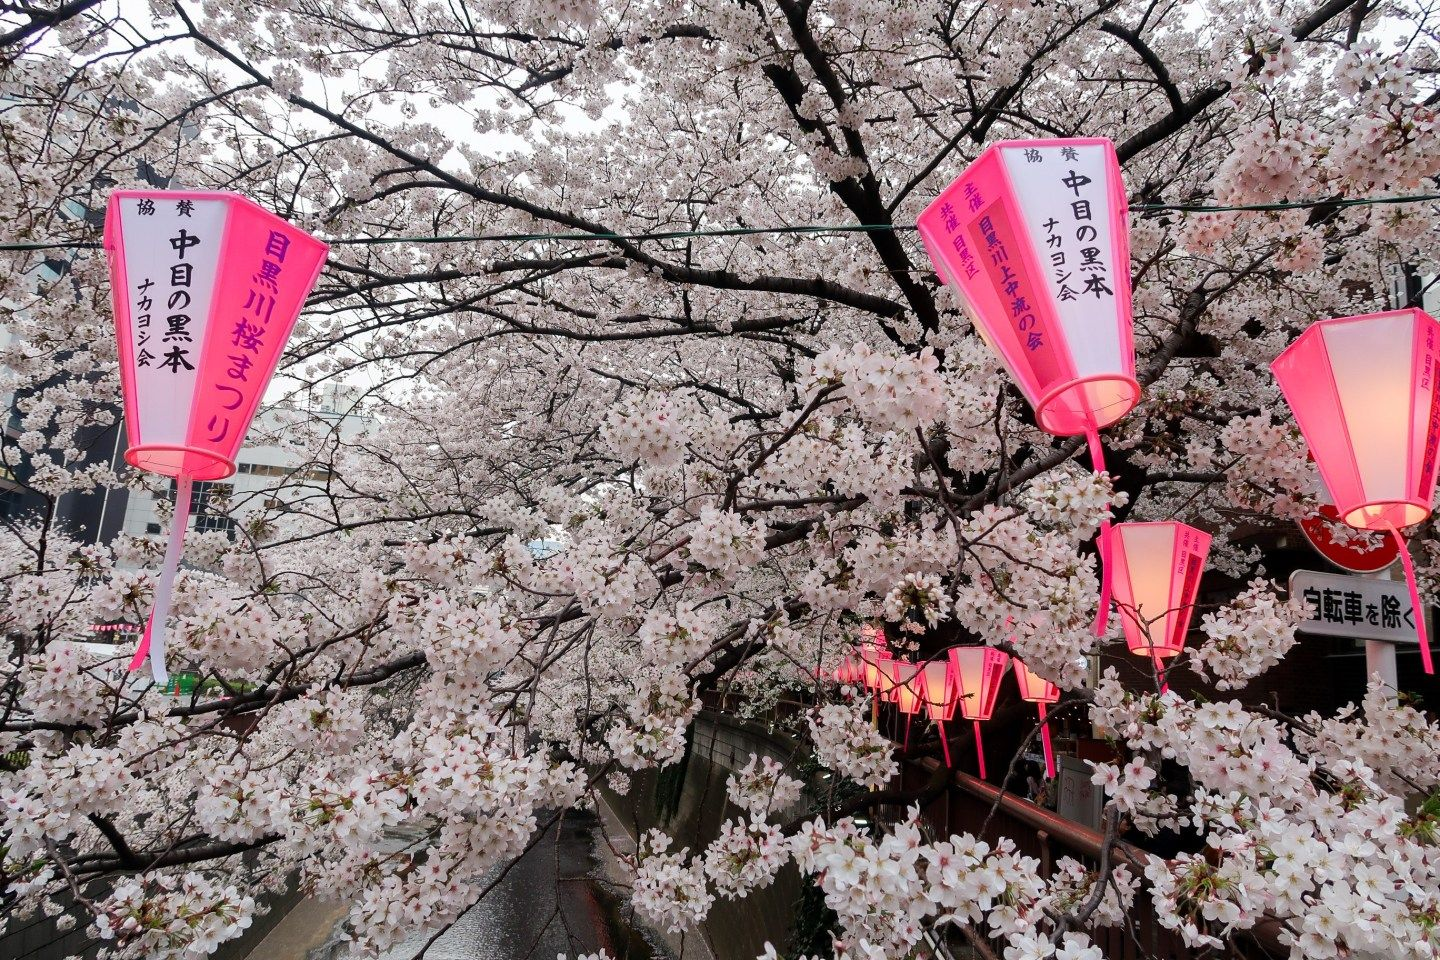 Best Spots For Cherry Blossom Viewing In Tokyo Cherry Blossom Flower Festival Blossom